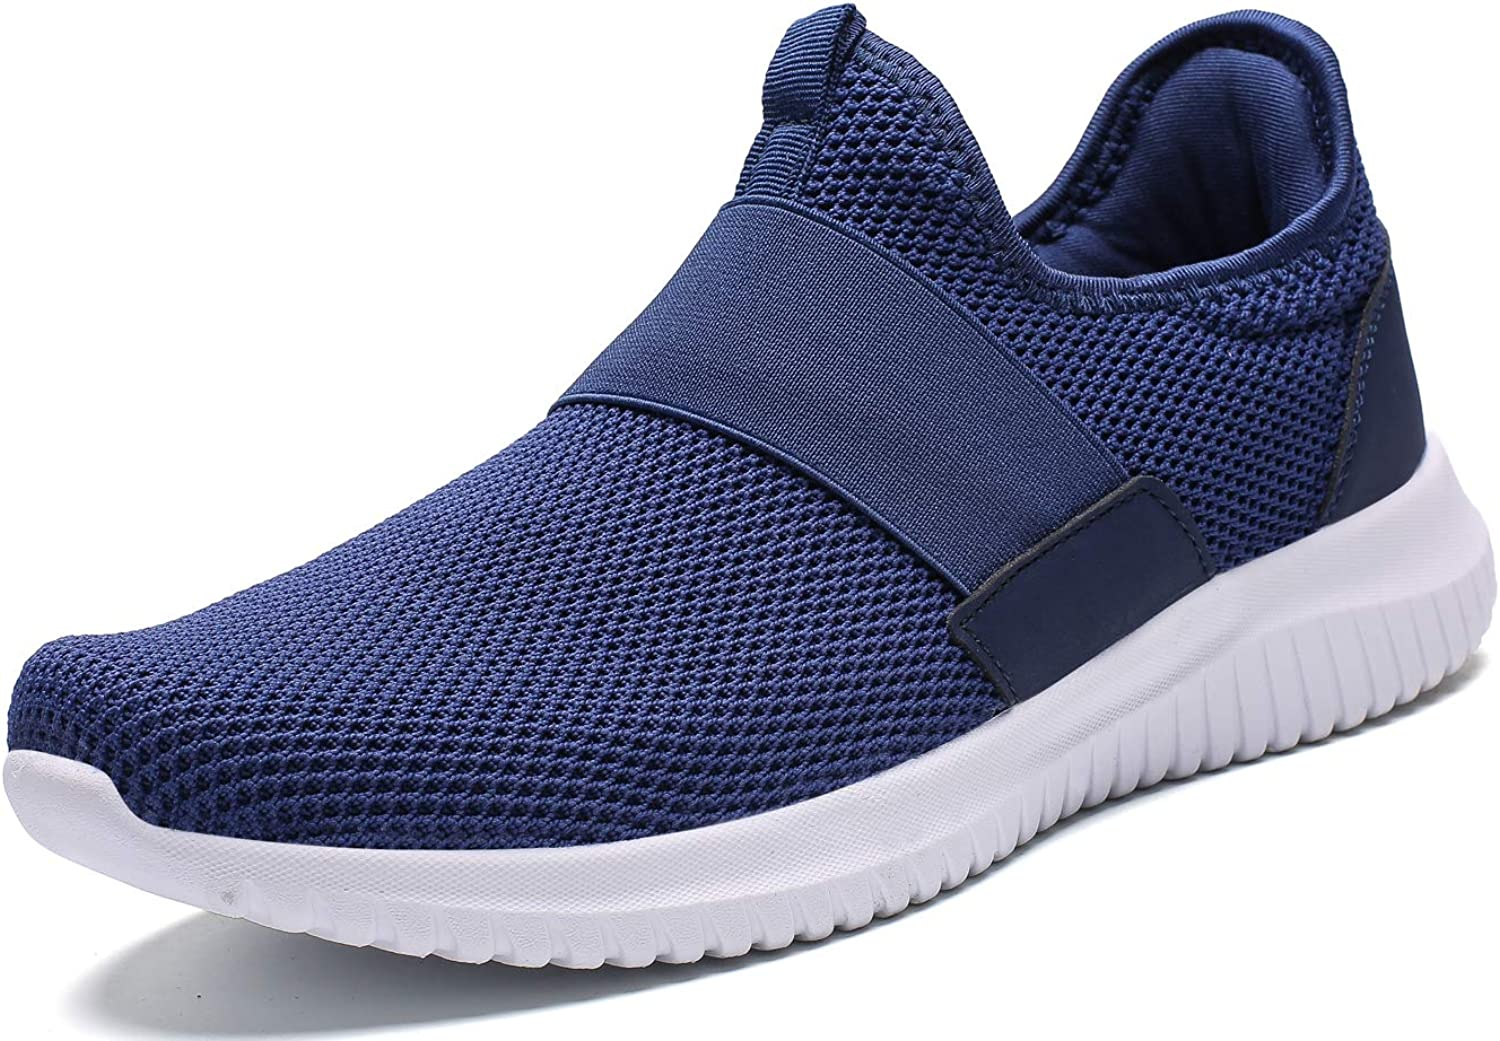 bb9d9433 Moster Men's Athletic Running shoes Fashion Sneakers Casual Walking ...